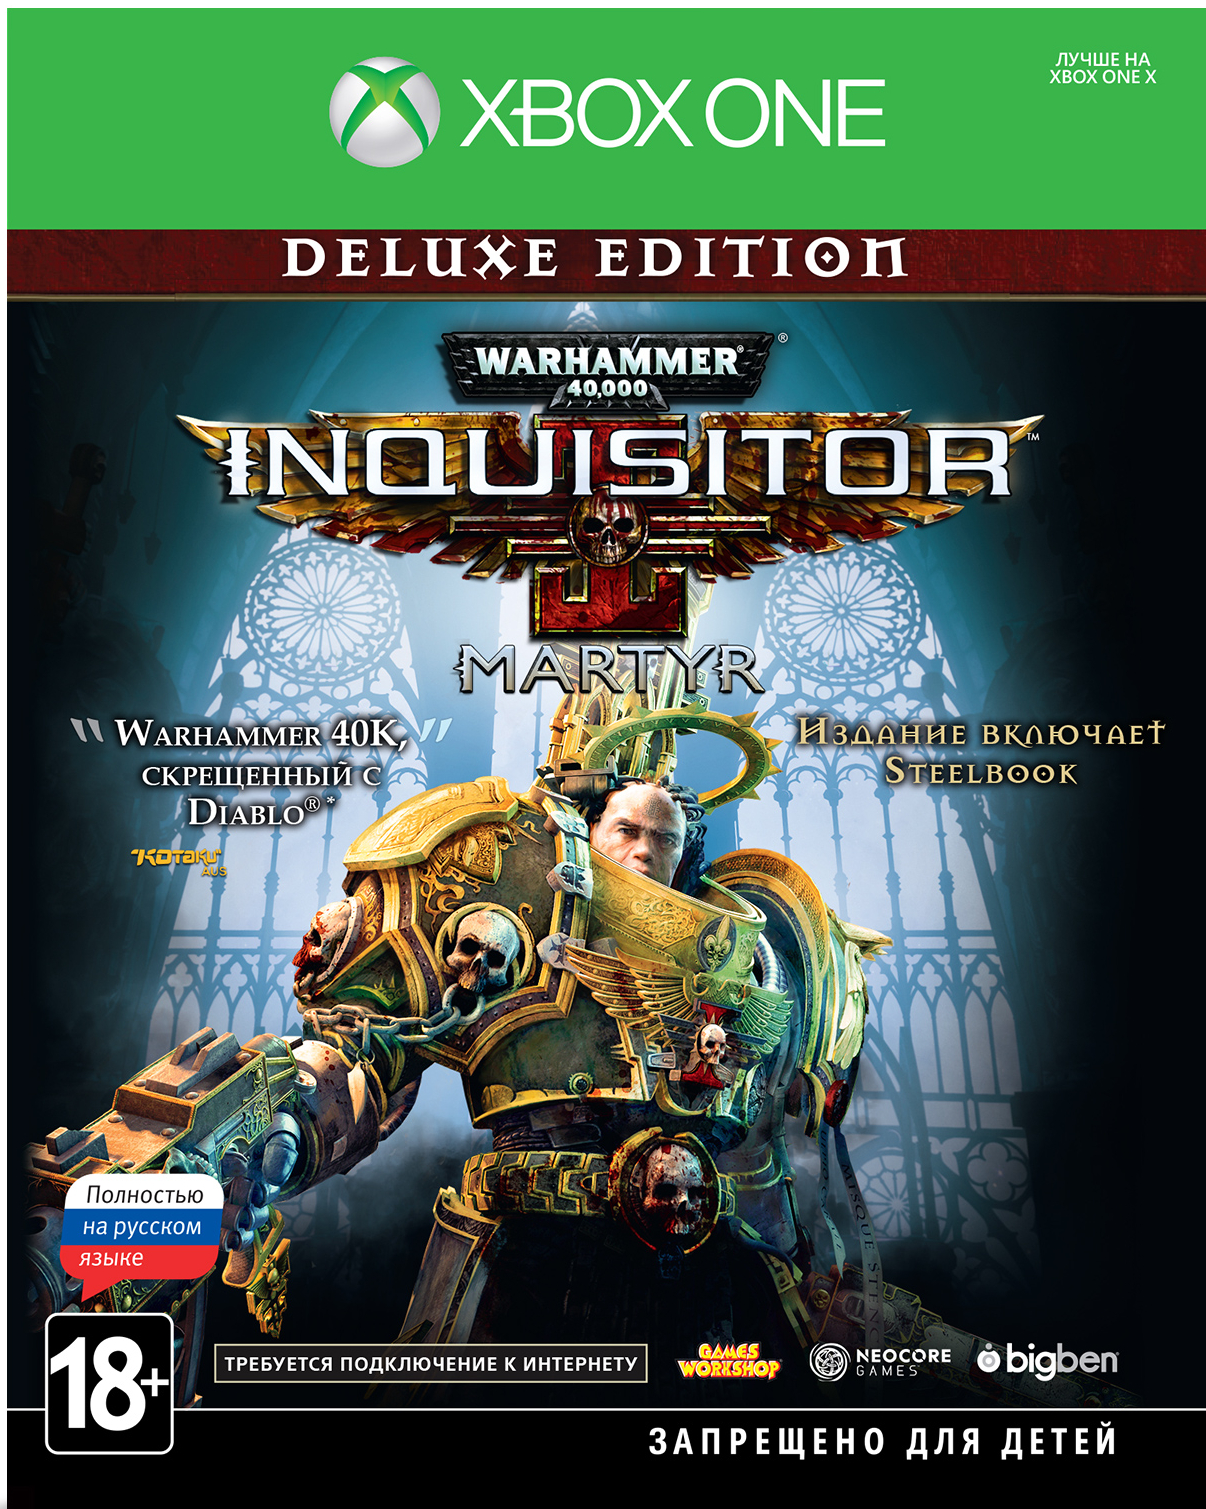 Warhammer 40,000: Inquisitor – Martyr. Deluxe Edition [Xbox One] bigben interactive xb1hdmiflat